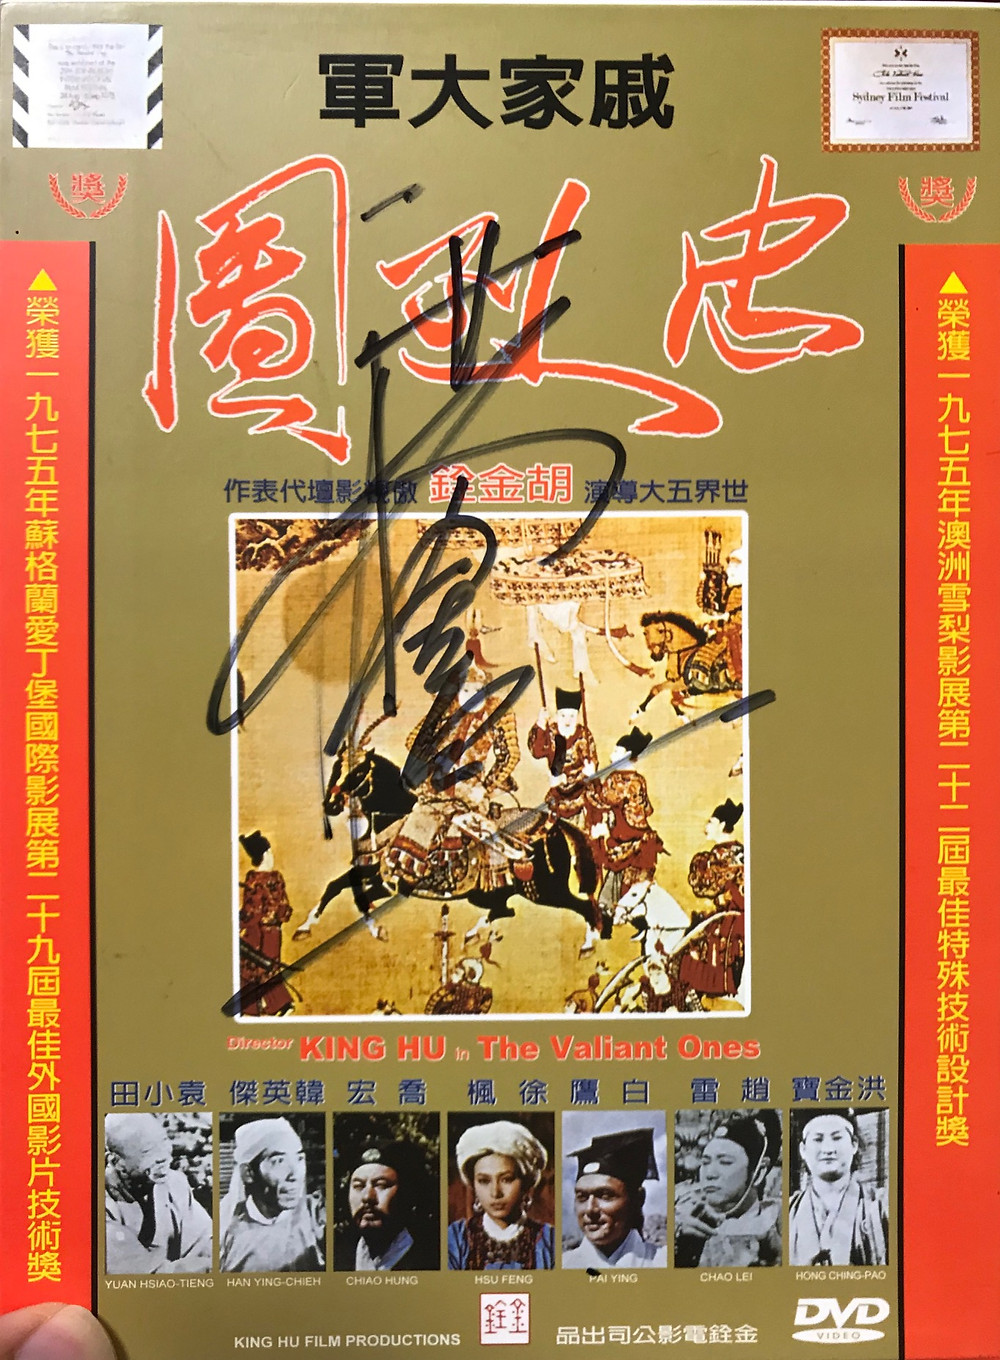 FILE PHOTO: Sammo Hung singed on my DVD cover of The Variant Ones (1975)  ©Ryota Nakanishi